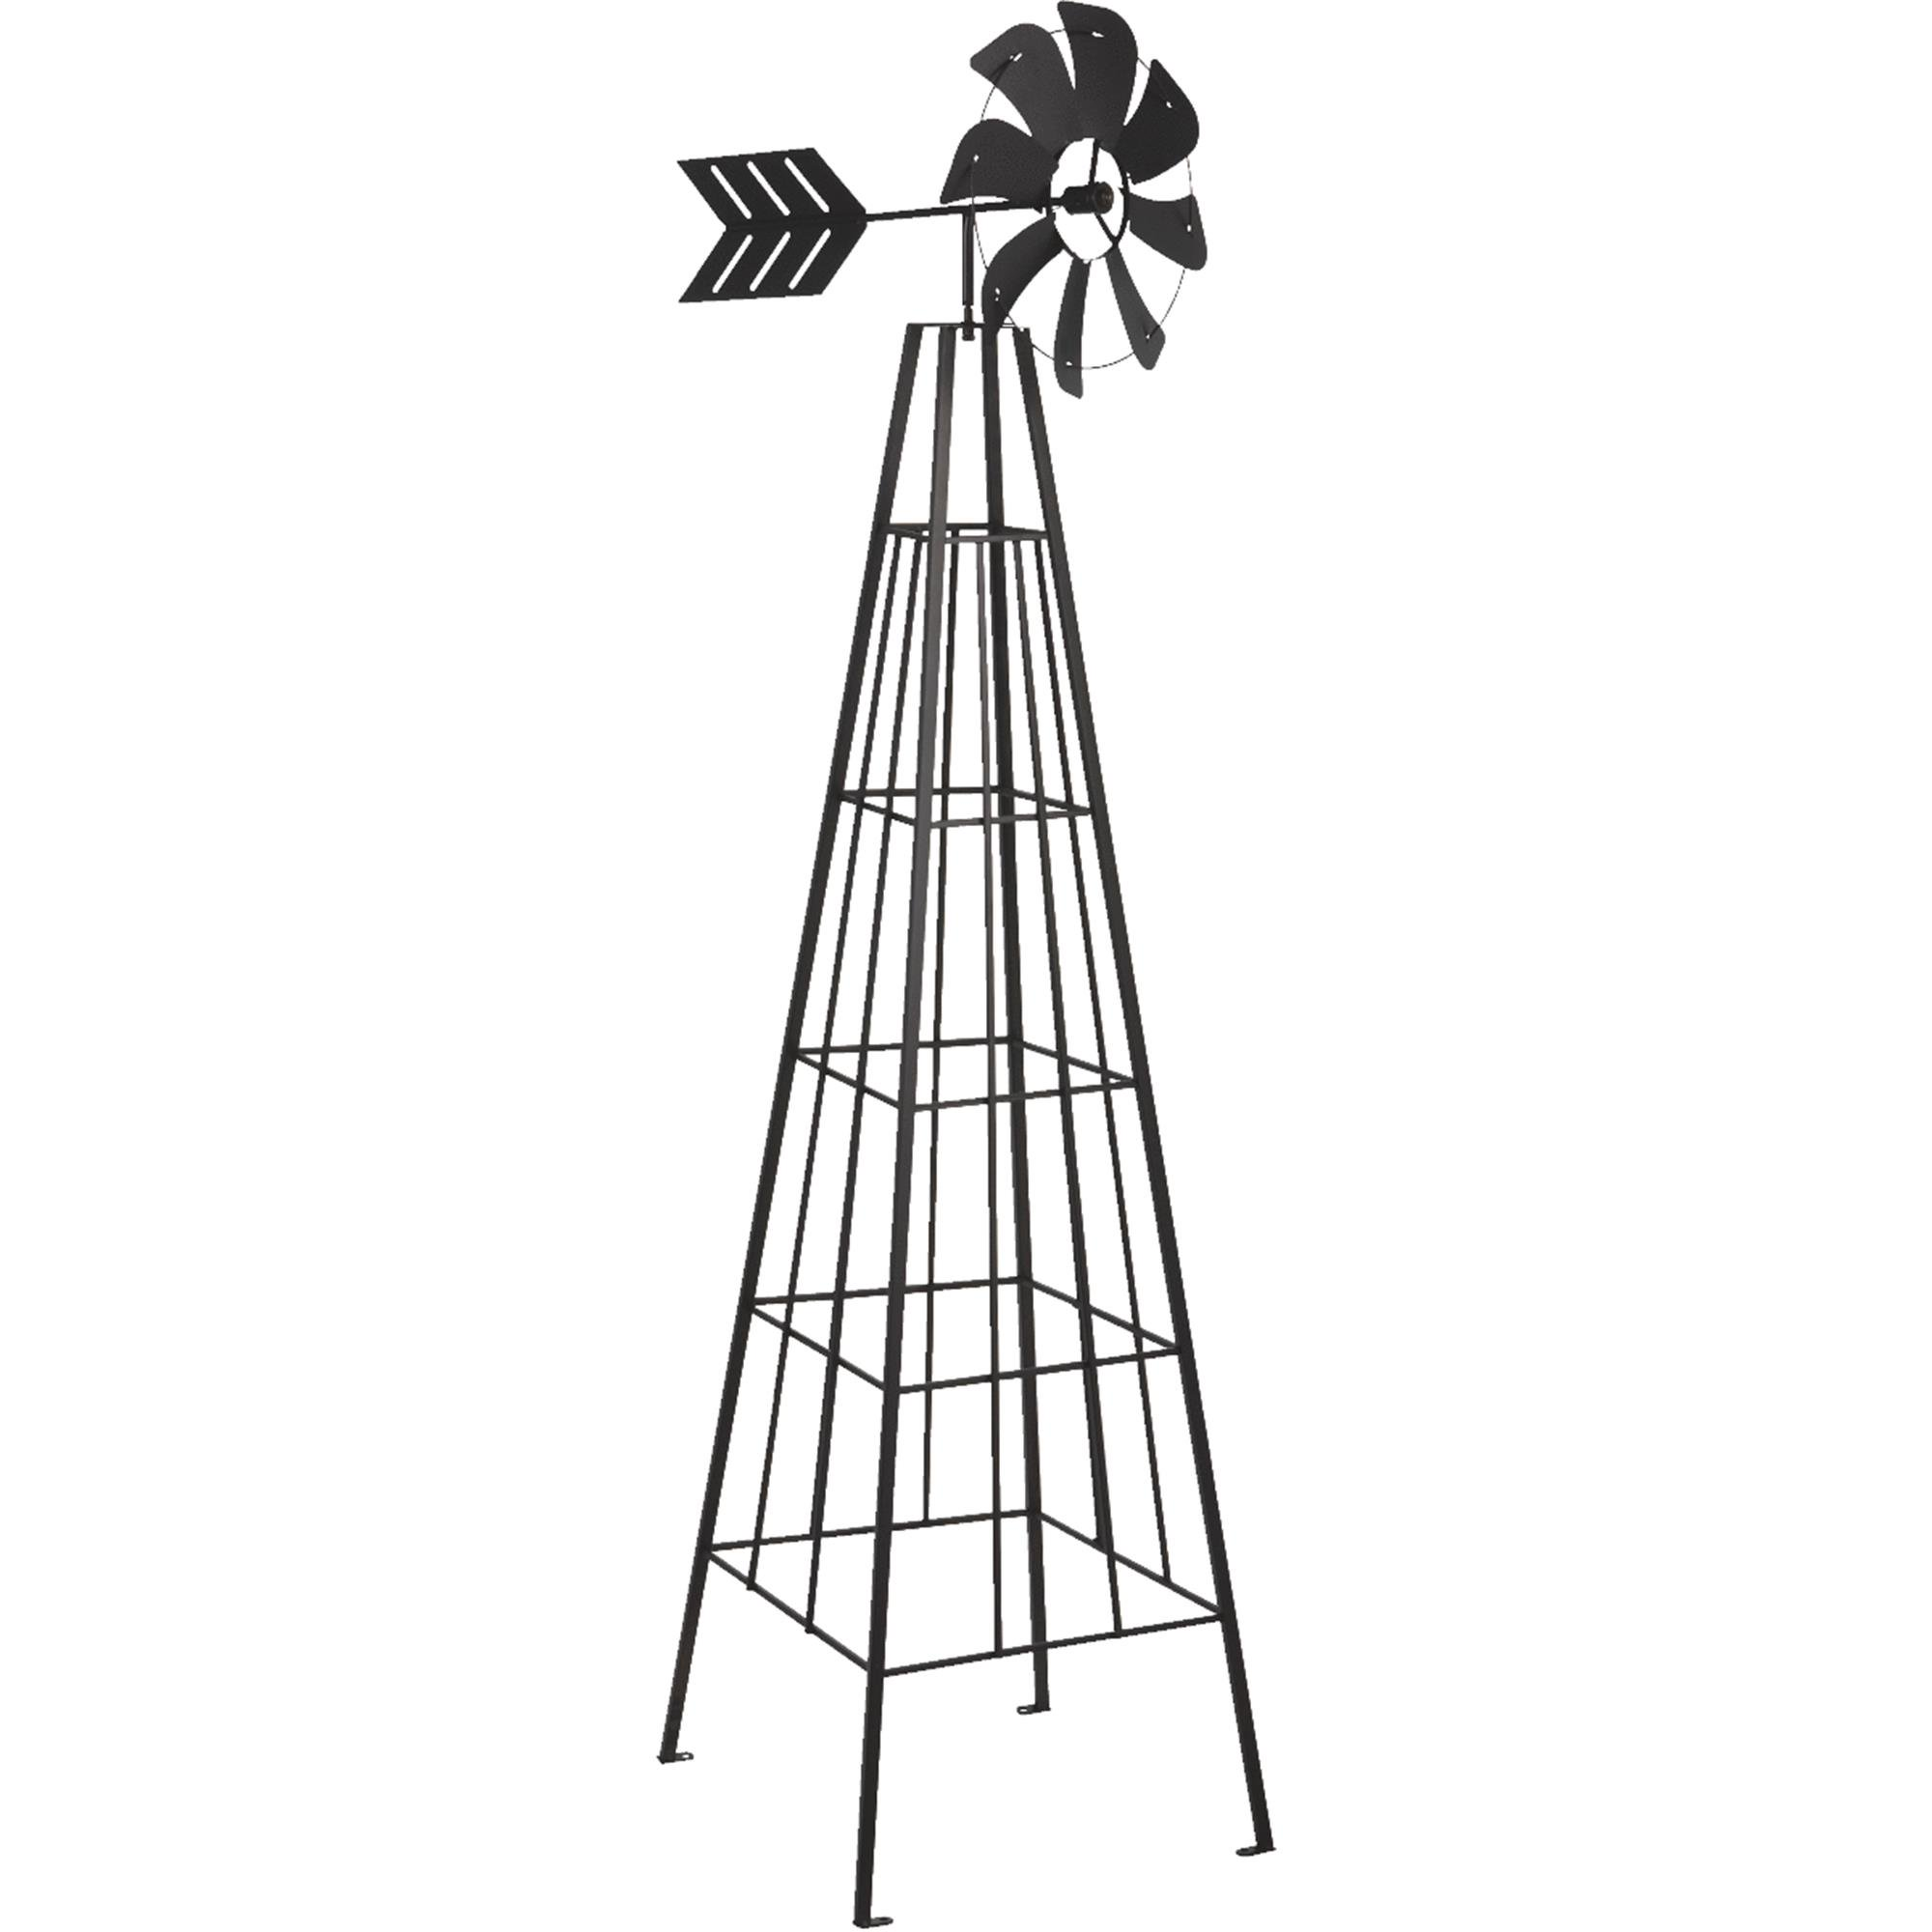 Panacea 72 In. Decorative Windmill Obelisk by Panacea Products